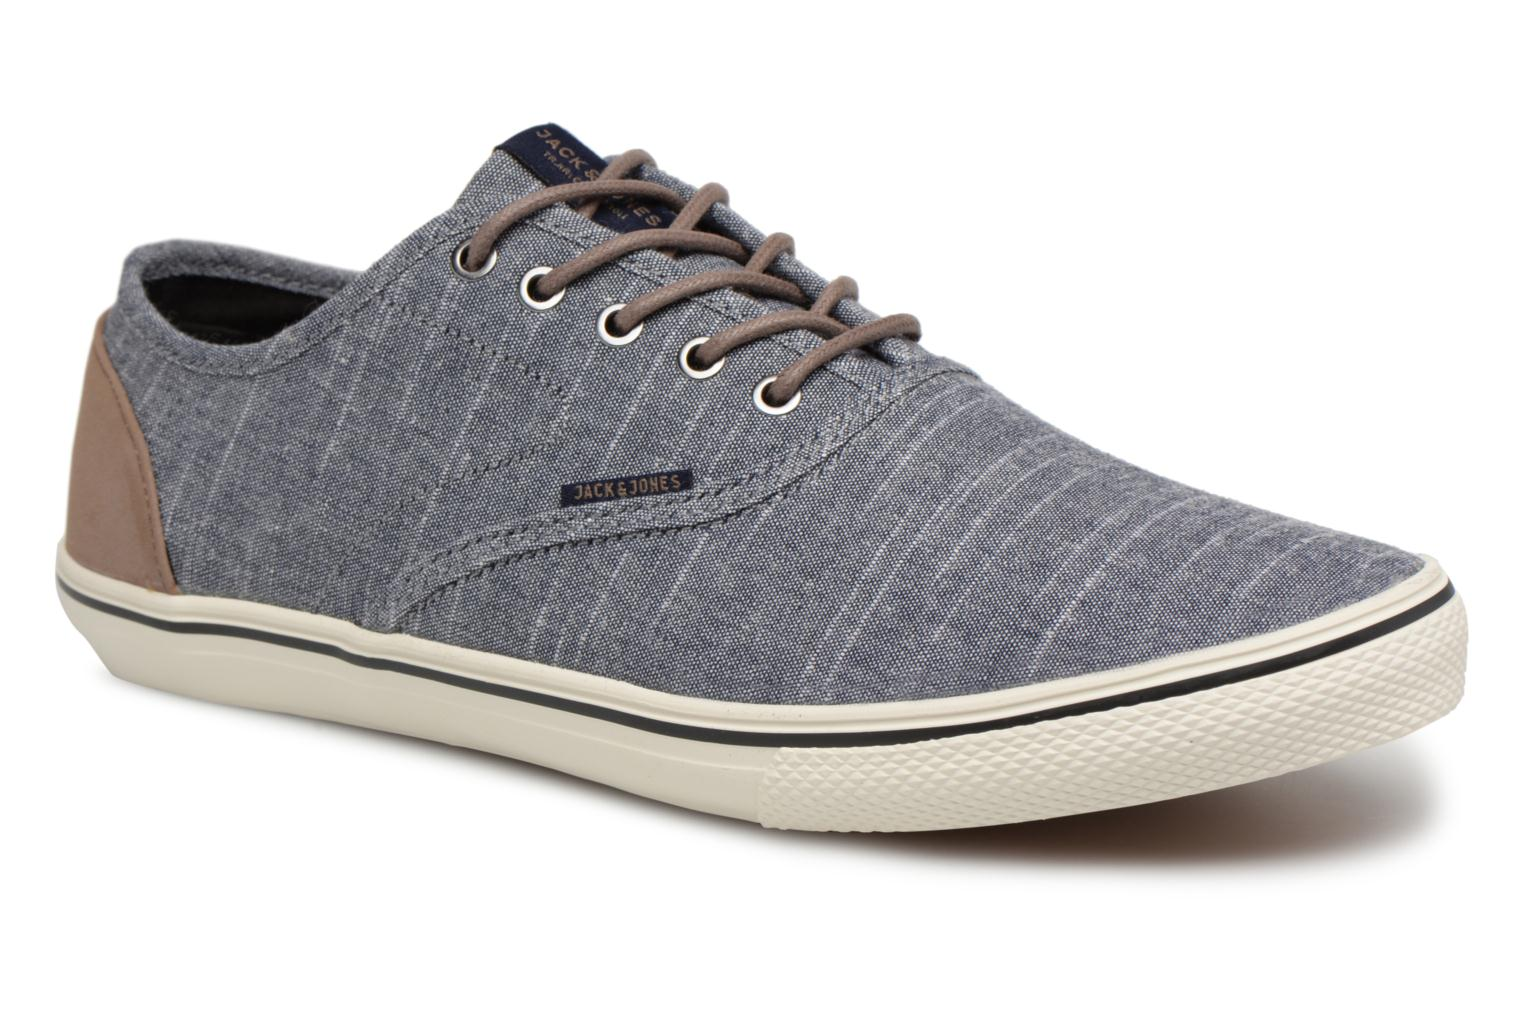 Marques Chaussure homme Jack & Jones homme JFW Gaston Pu Combo Anthracite